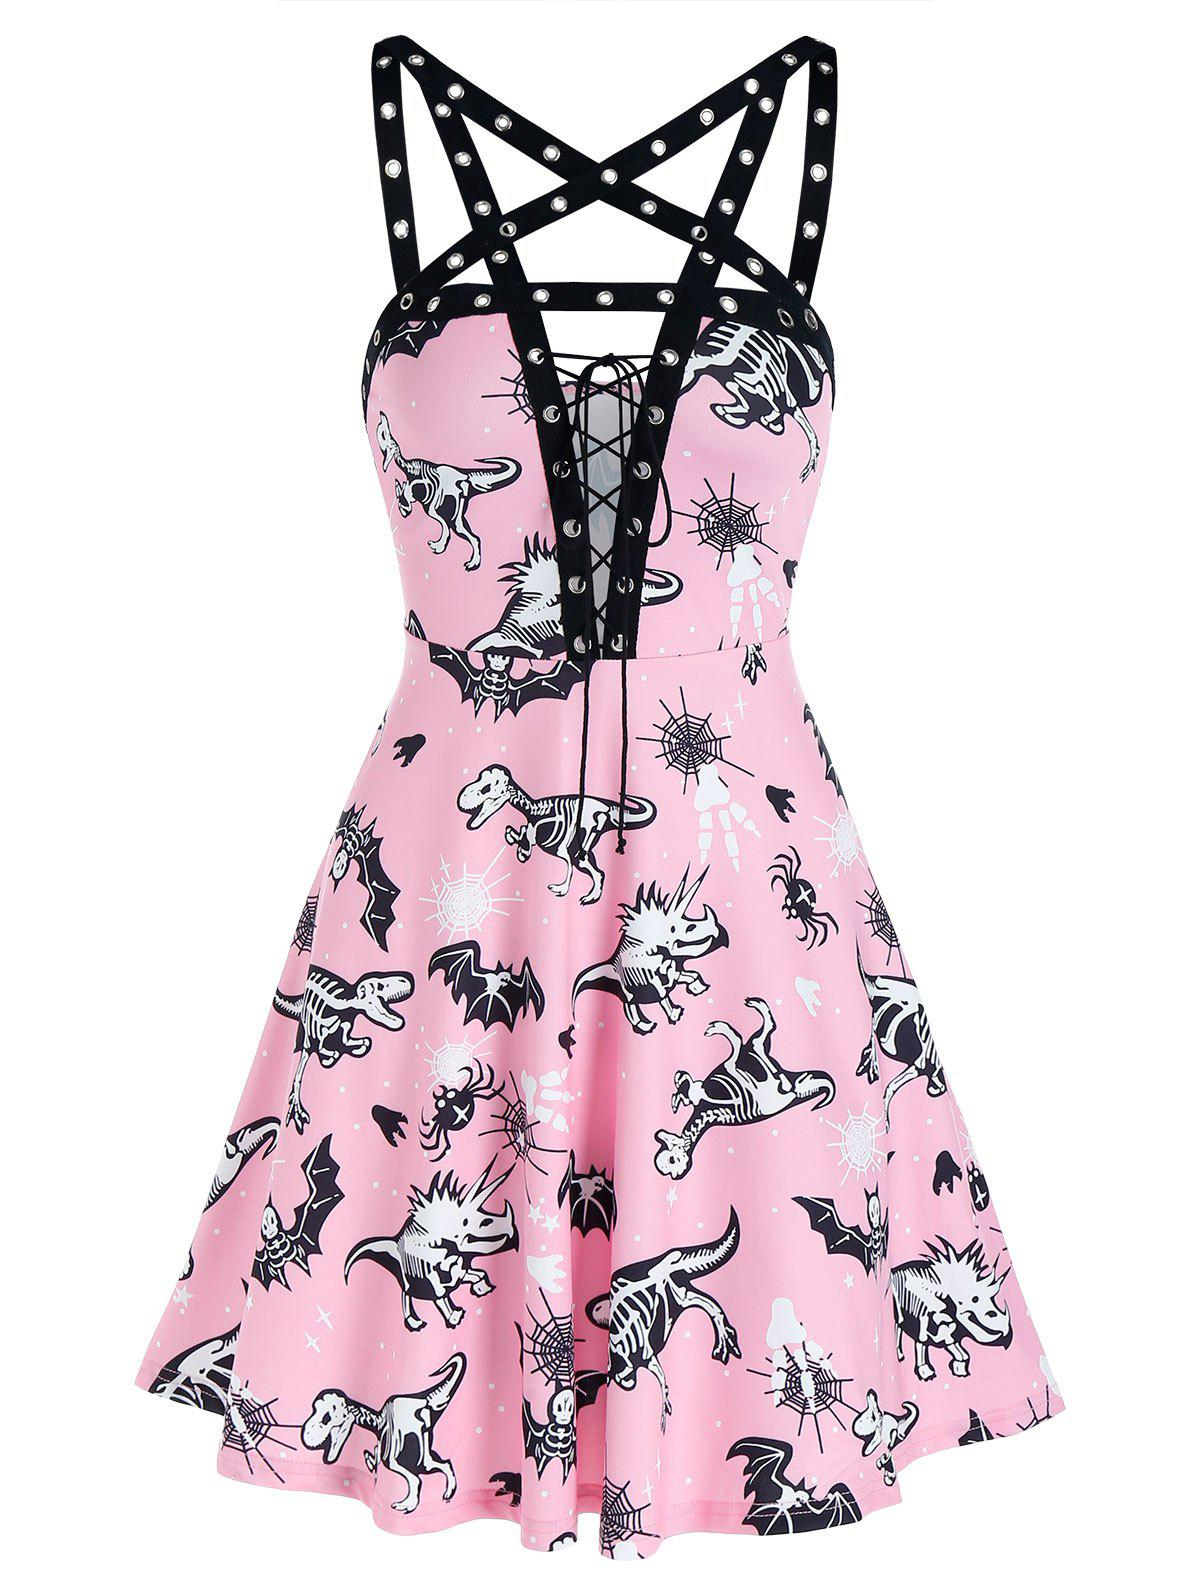 Unique Animal Skeleton Print Lace Up Grommet Strap Cami Dress